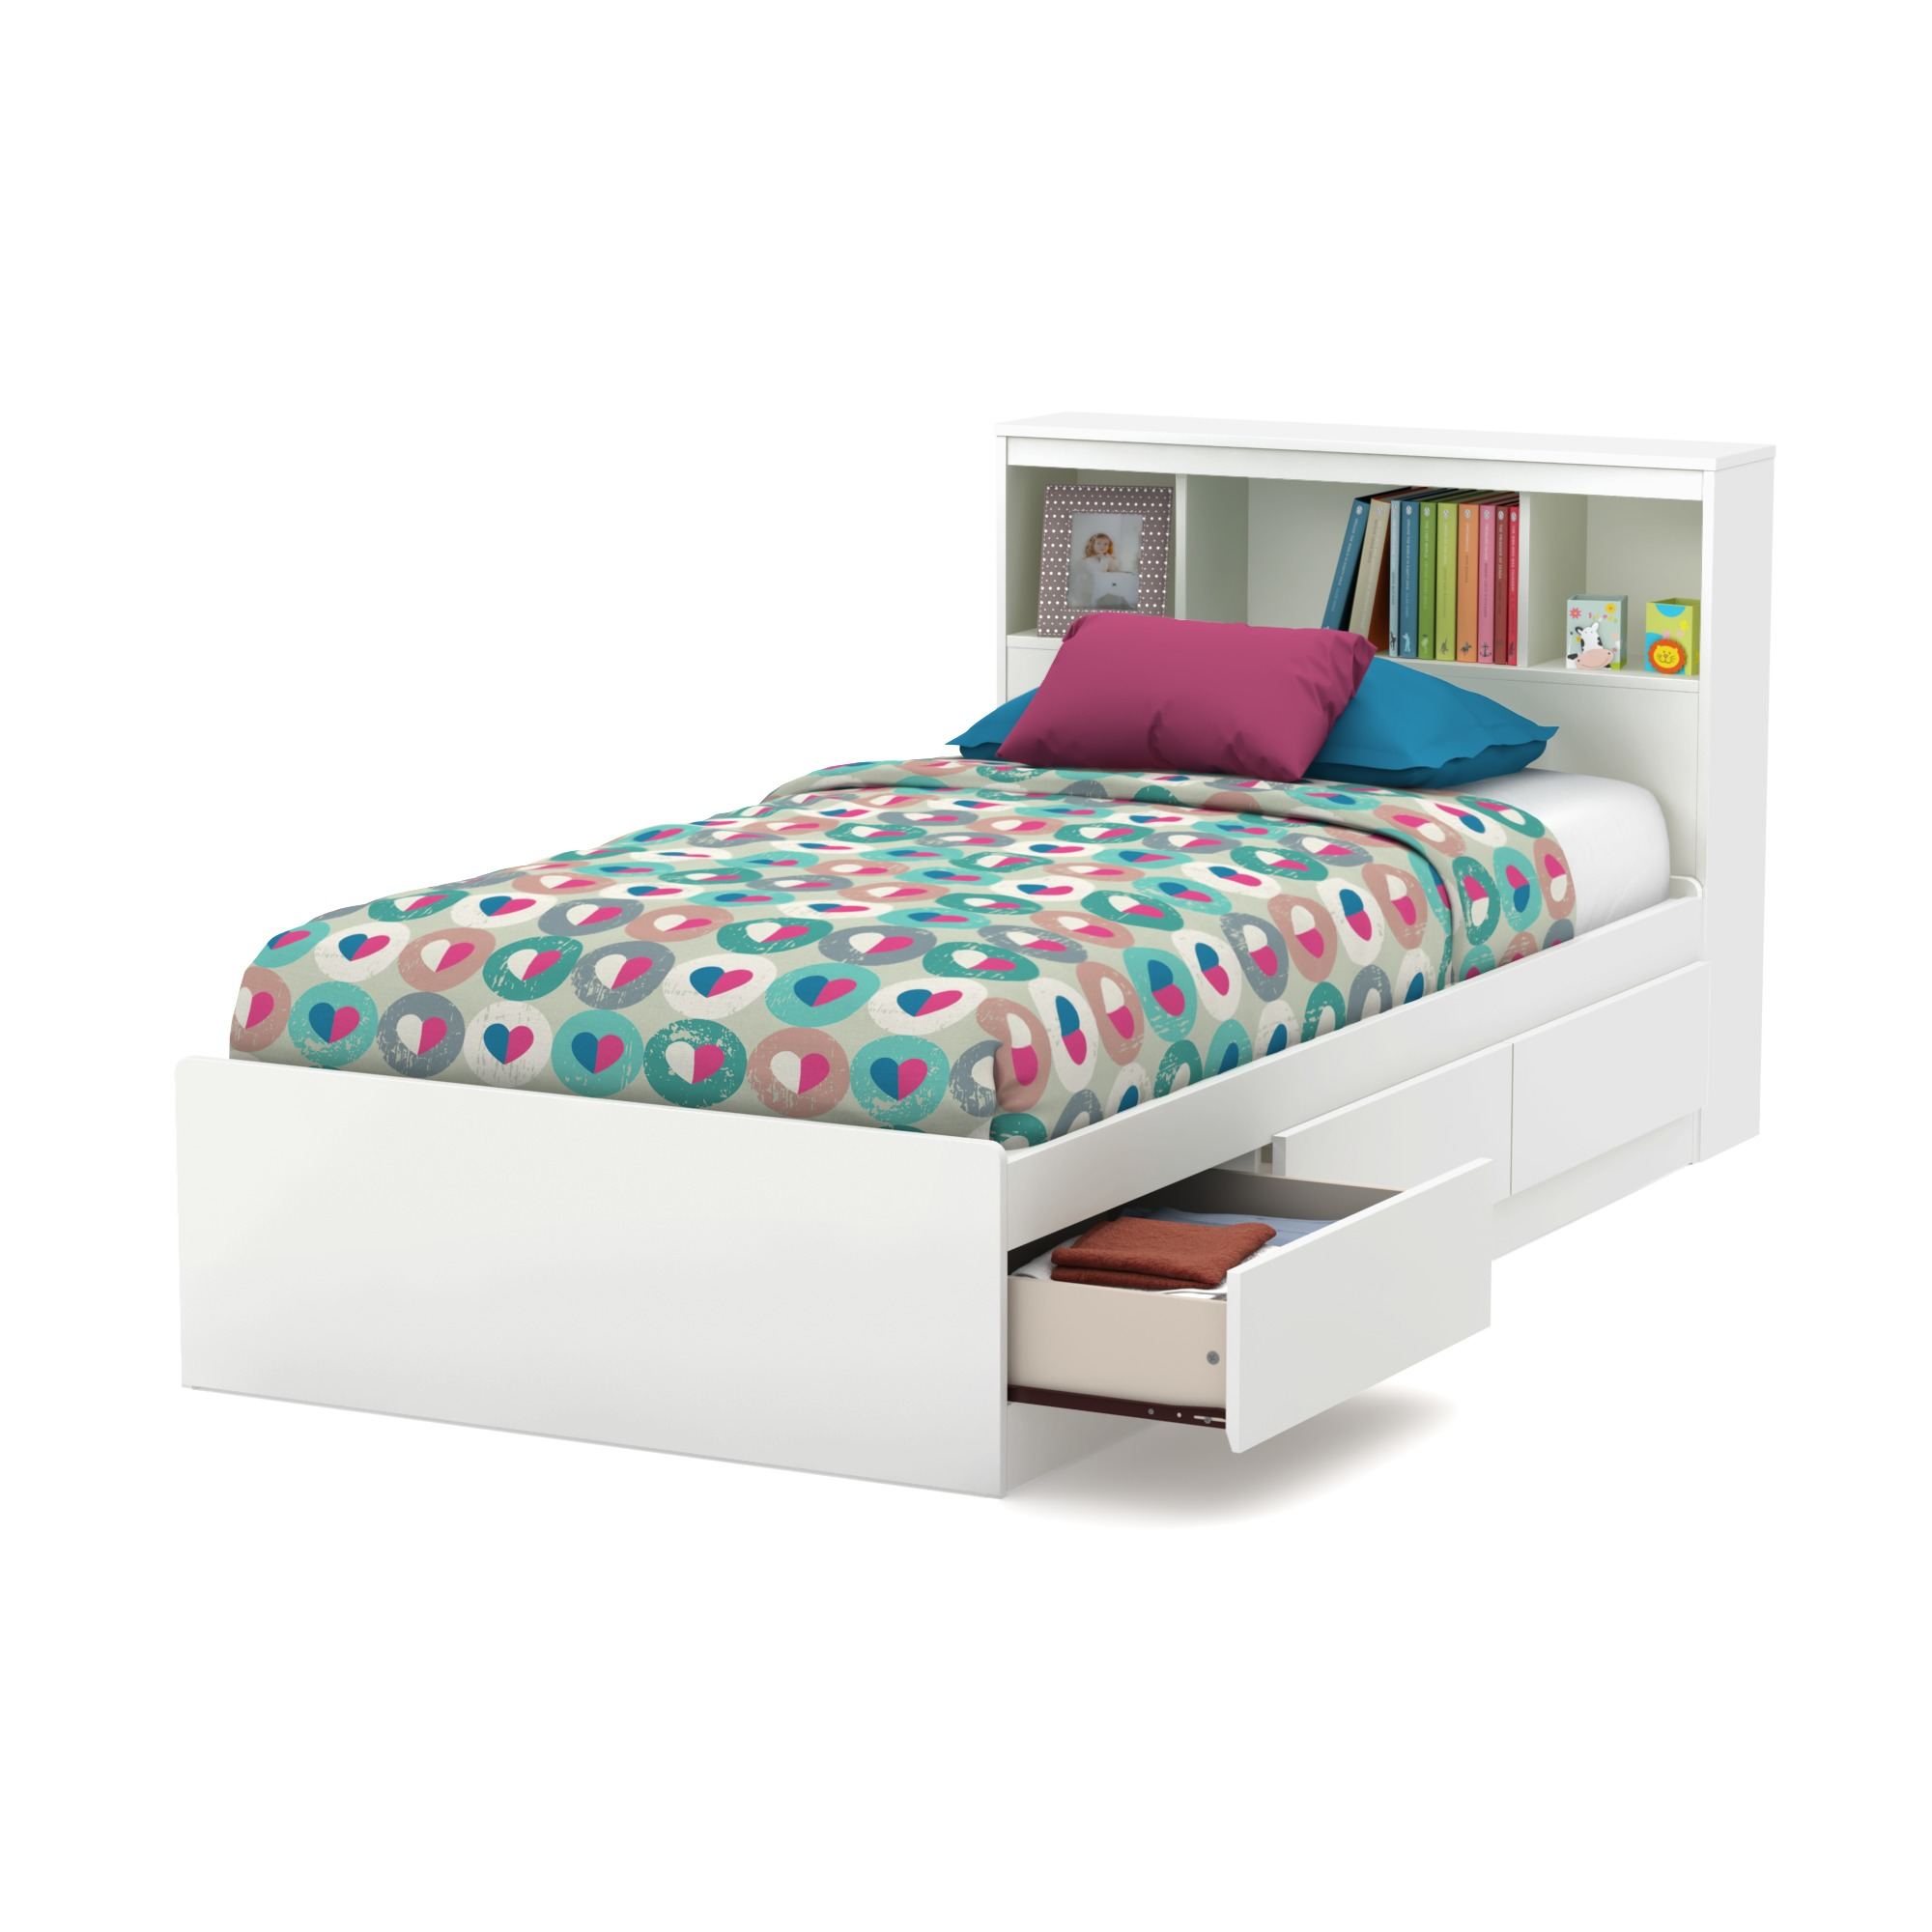 South Shore Reevo Mates Bed With Bookcase Headboard